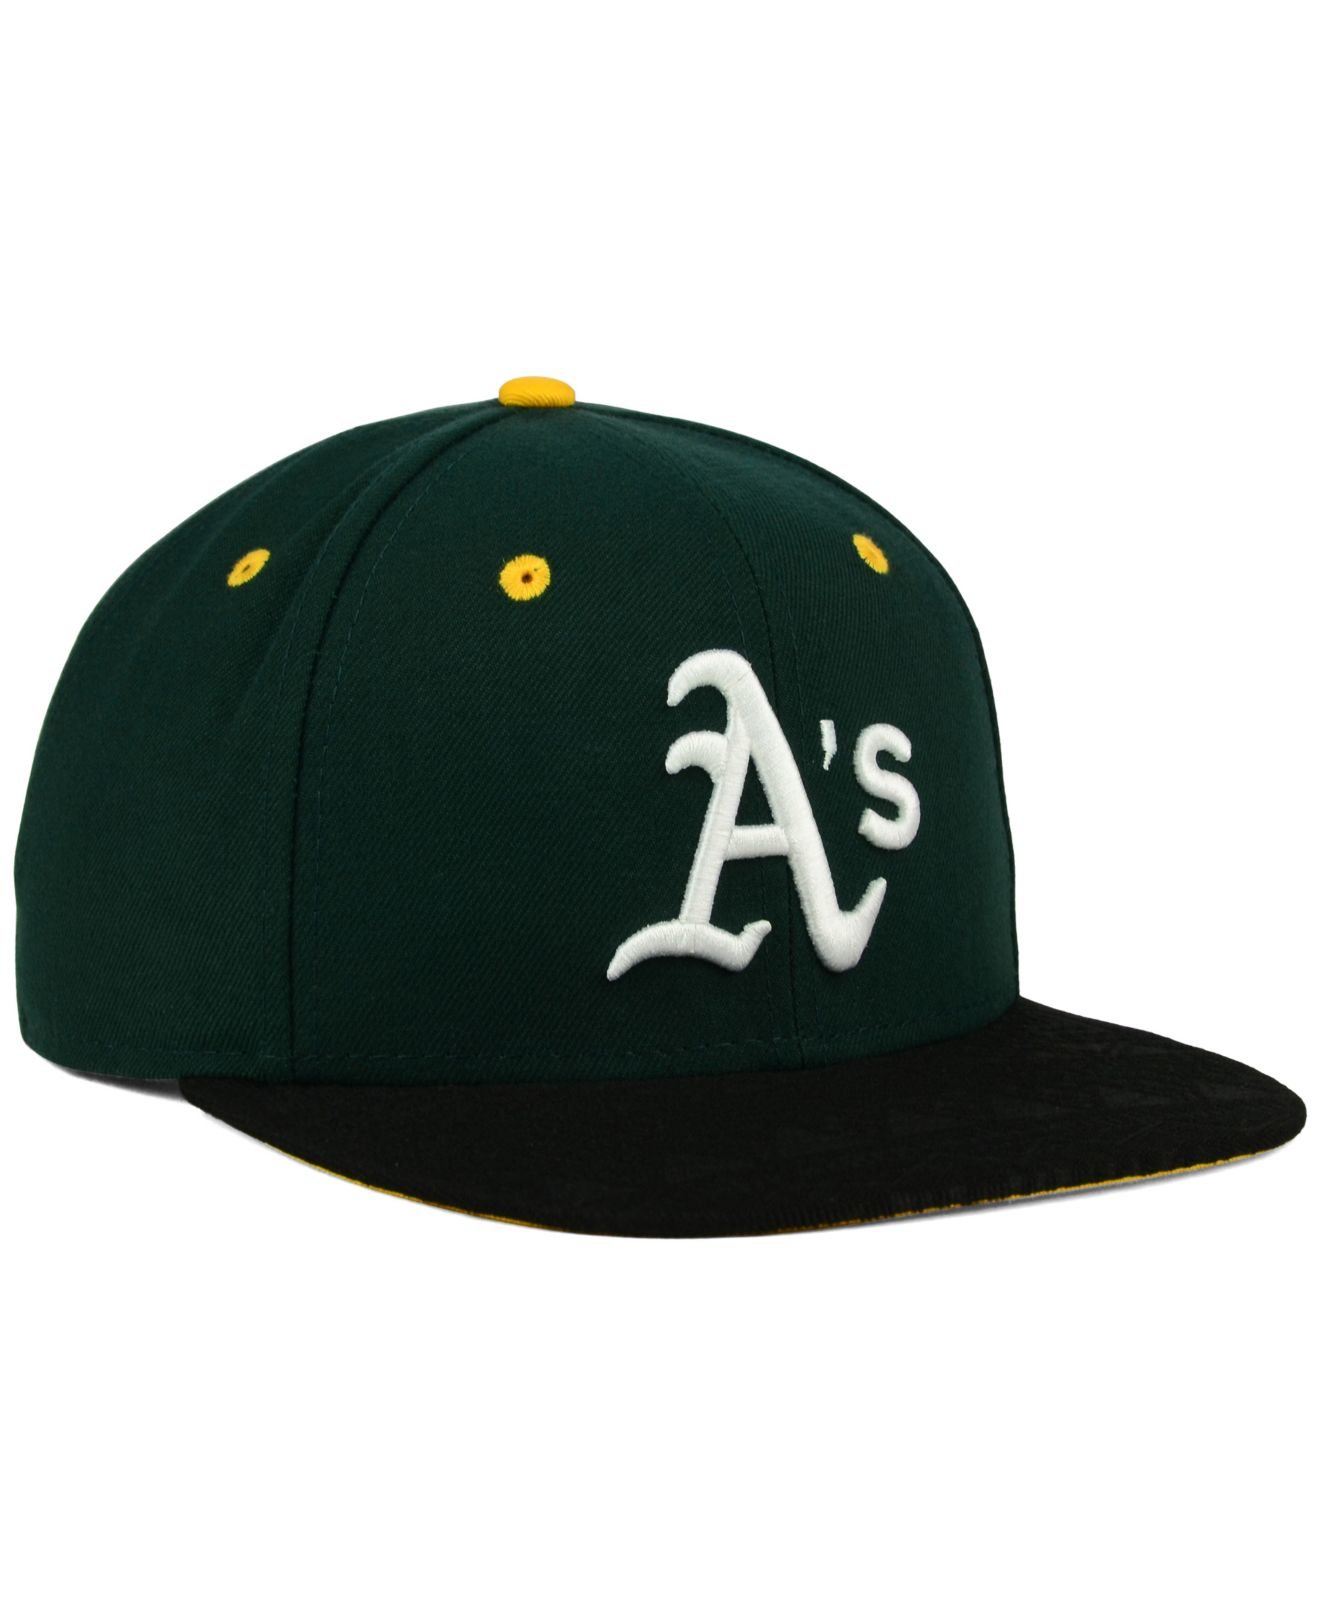 competitive price 43f2c 64593 ... netherlands lyst ktz oakland athletics tone 9fifty snapback cap in  green for men ac34d 4309e